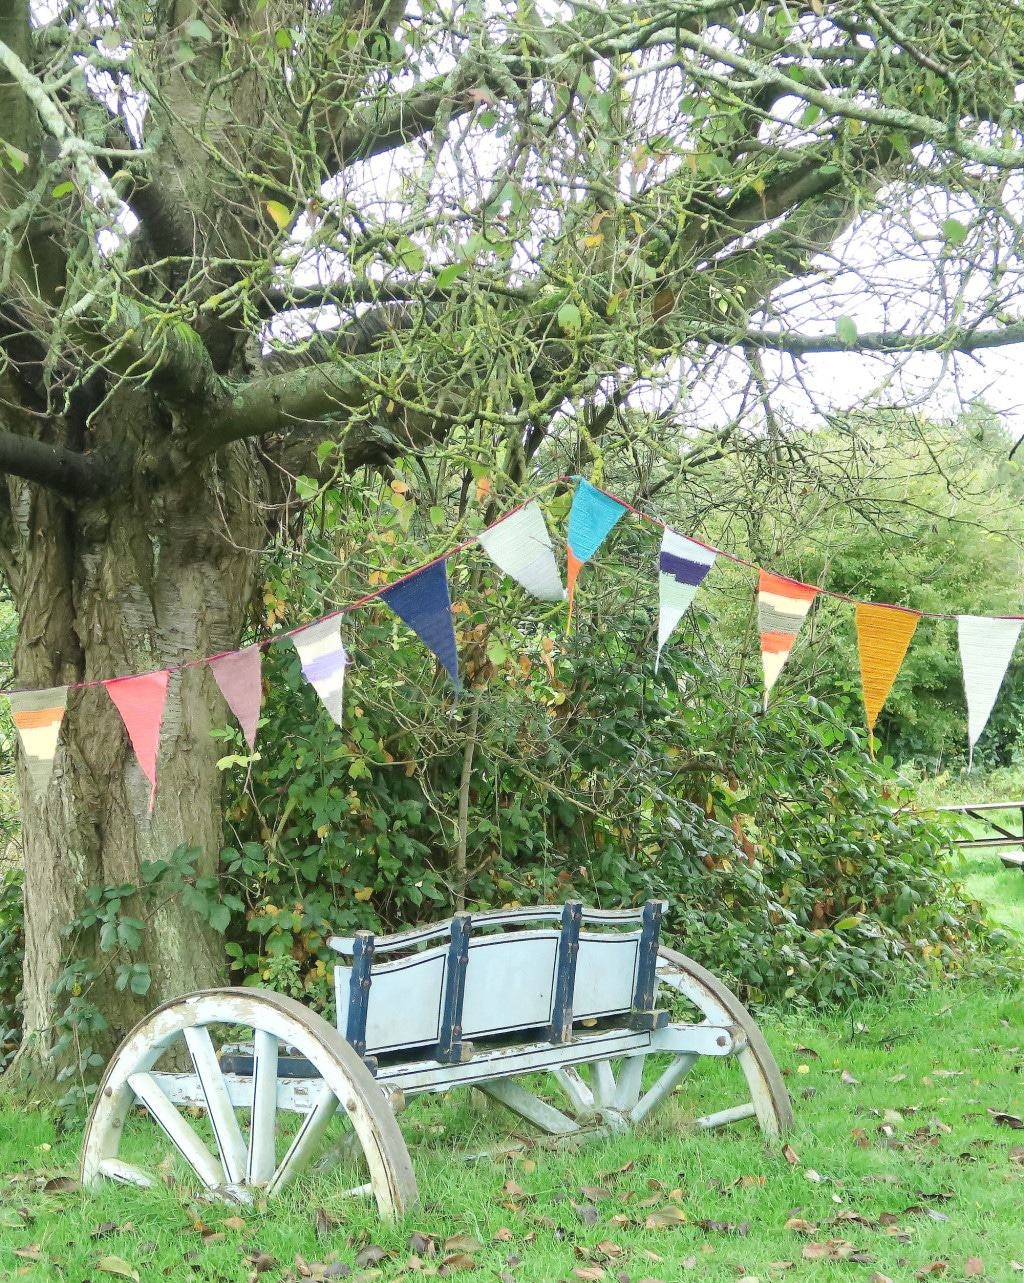 Bunting at the Chiltern Open Air Museum